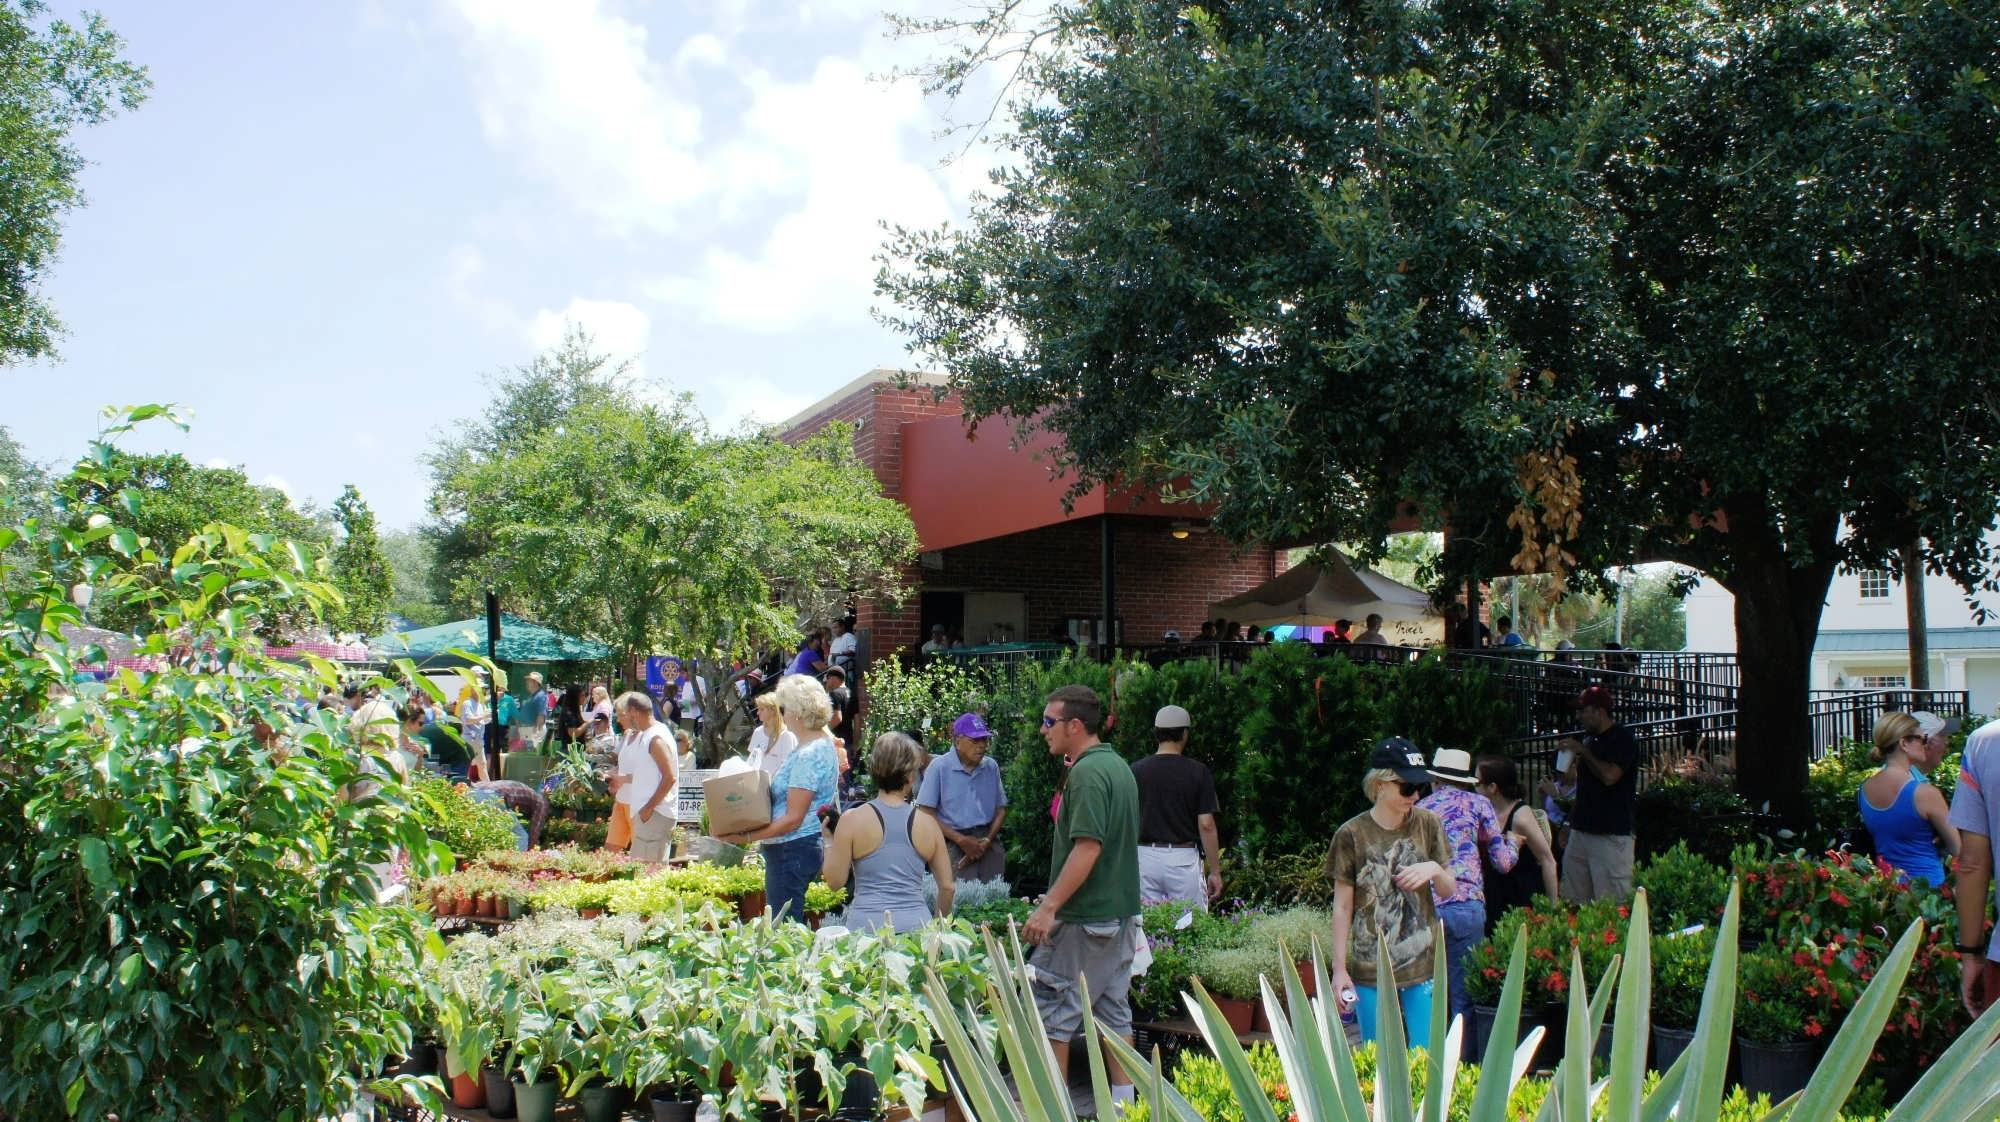 winter park farmers market variety abounds at this market north